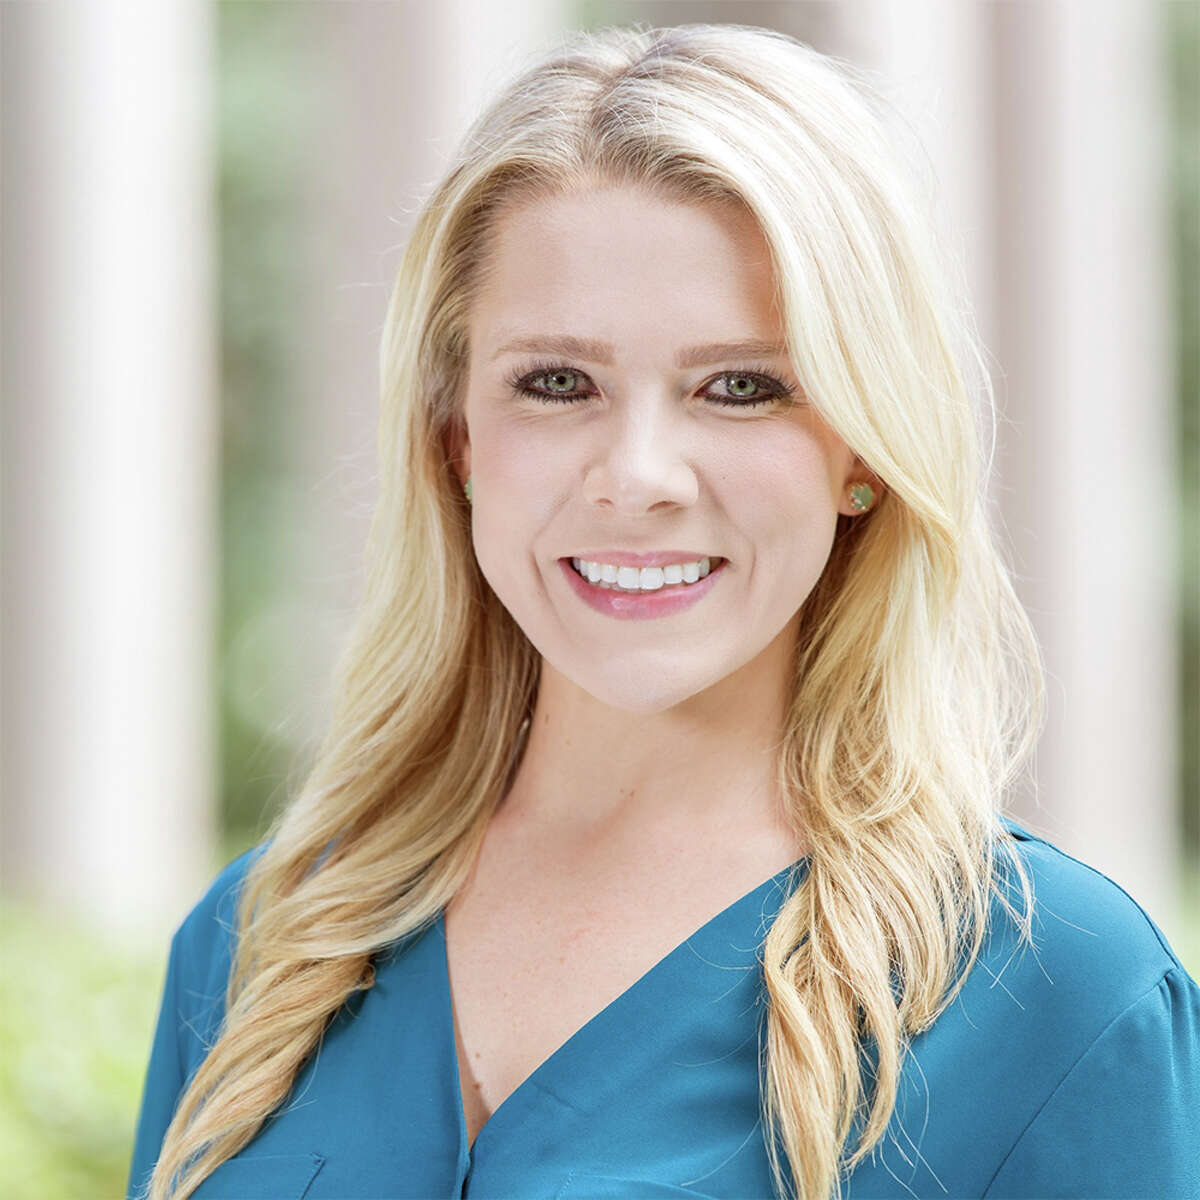 Sydney Dixon has joined CBRE as a senior associate on its retail services team. Dixon joins CBRE from Waterman Steele Real Estate Advisors, where she focused on tenant representation for regional and national tenants. She brings an extensive background working with landlords on project leasing and foreclosure dispositions.